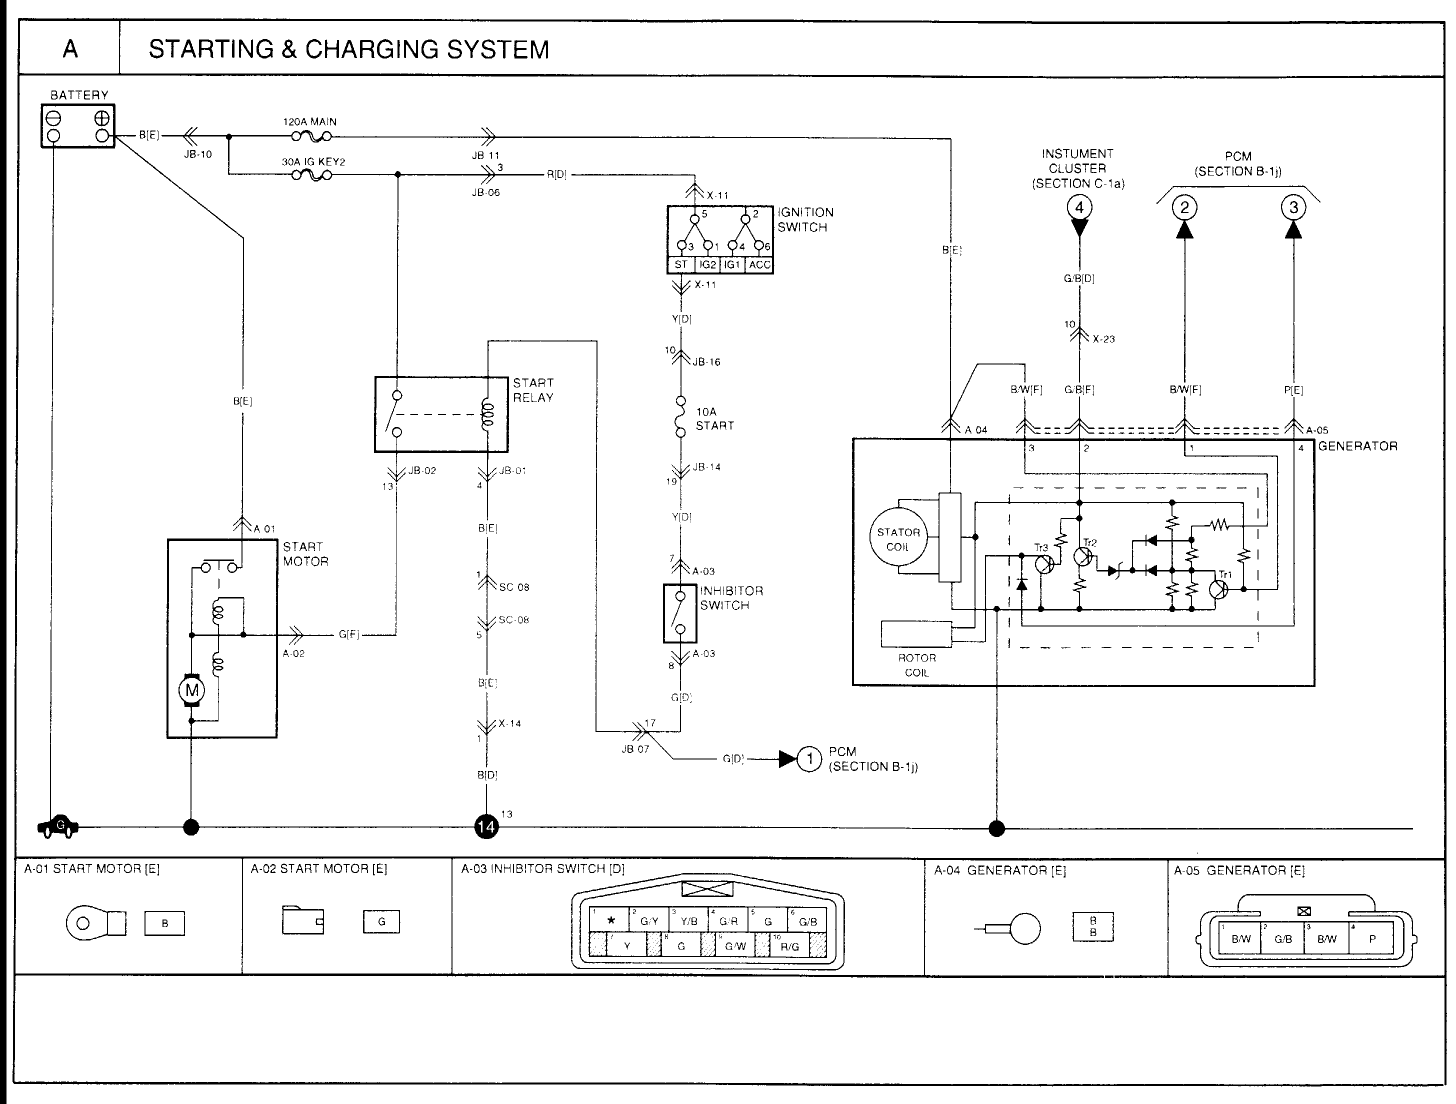 2003 kia sorento alternator diagram wiring diagram electricity rh casamagdalena us 2003 kia sedona engine diagram 2003 kia sorento engine diagram